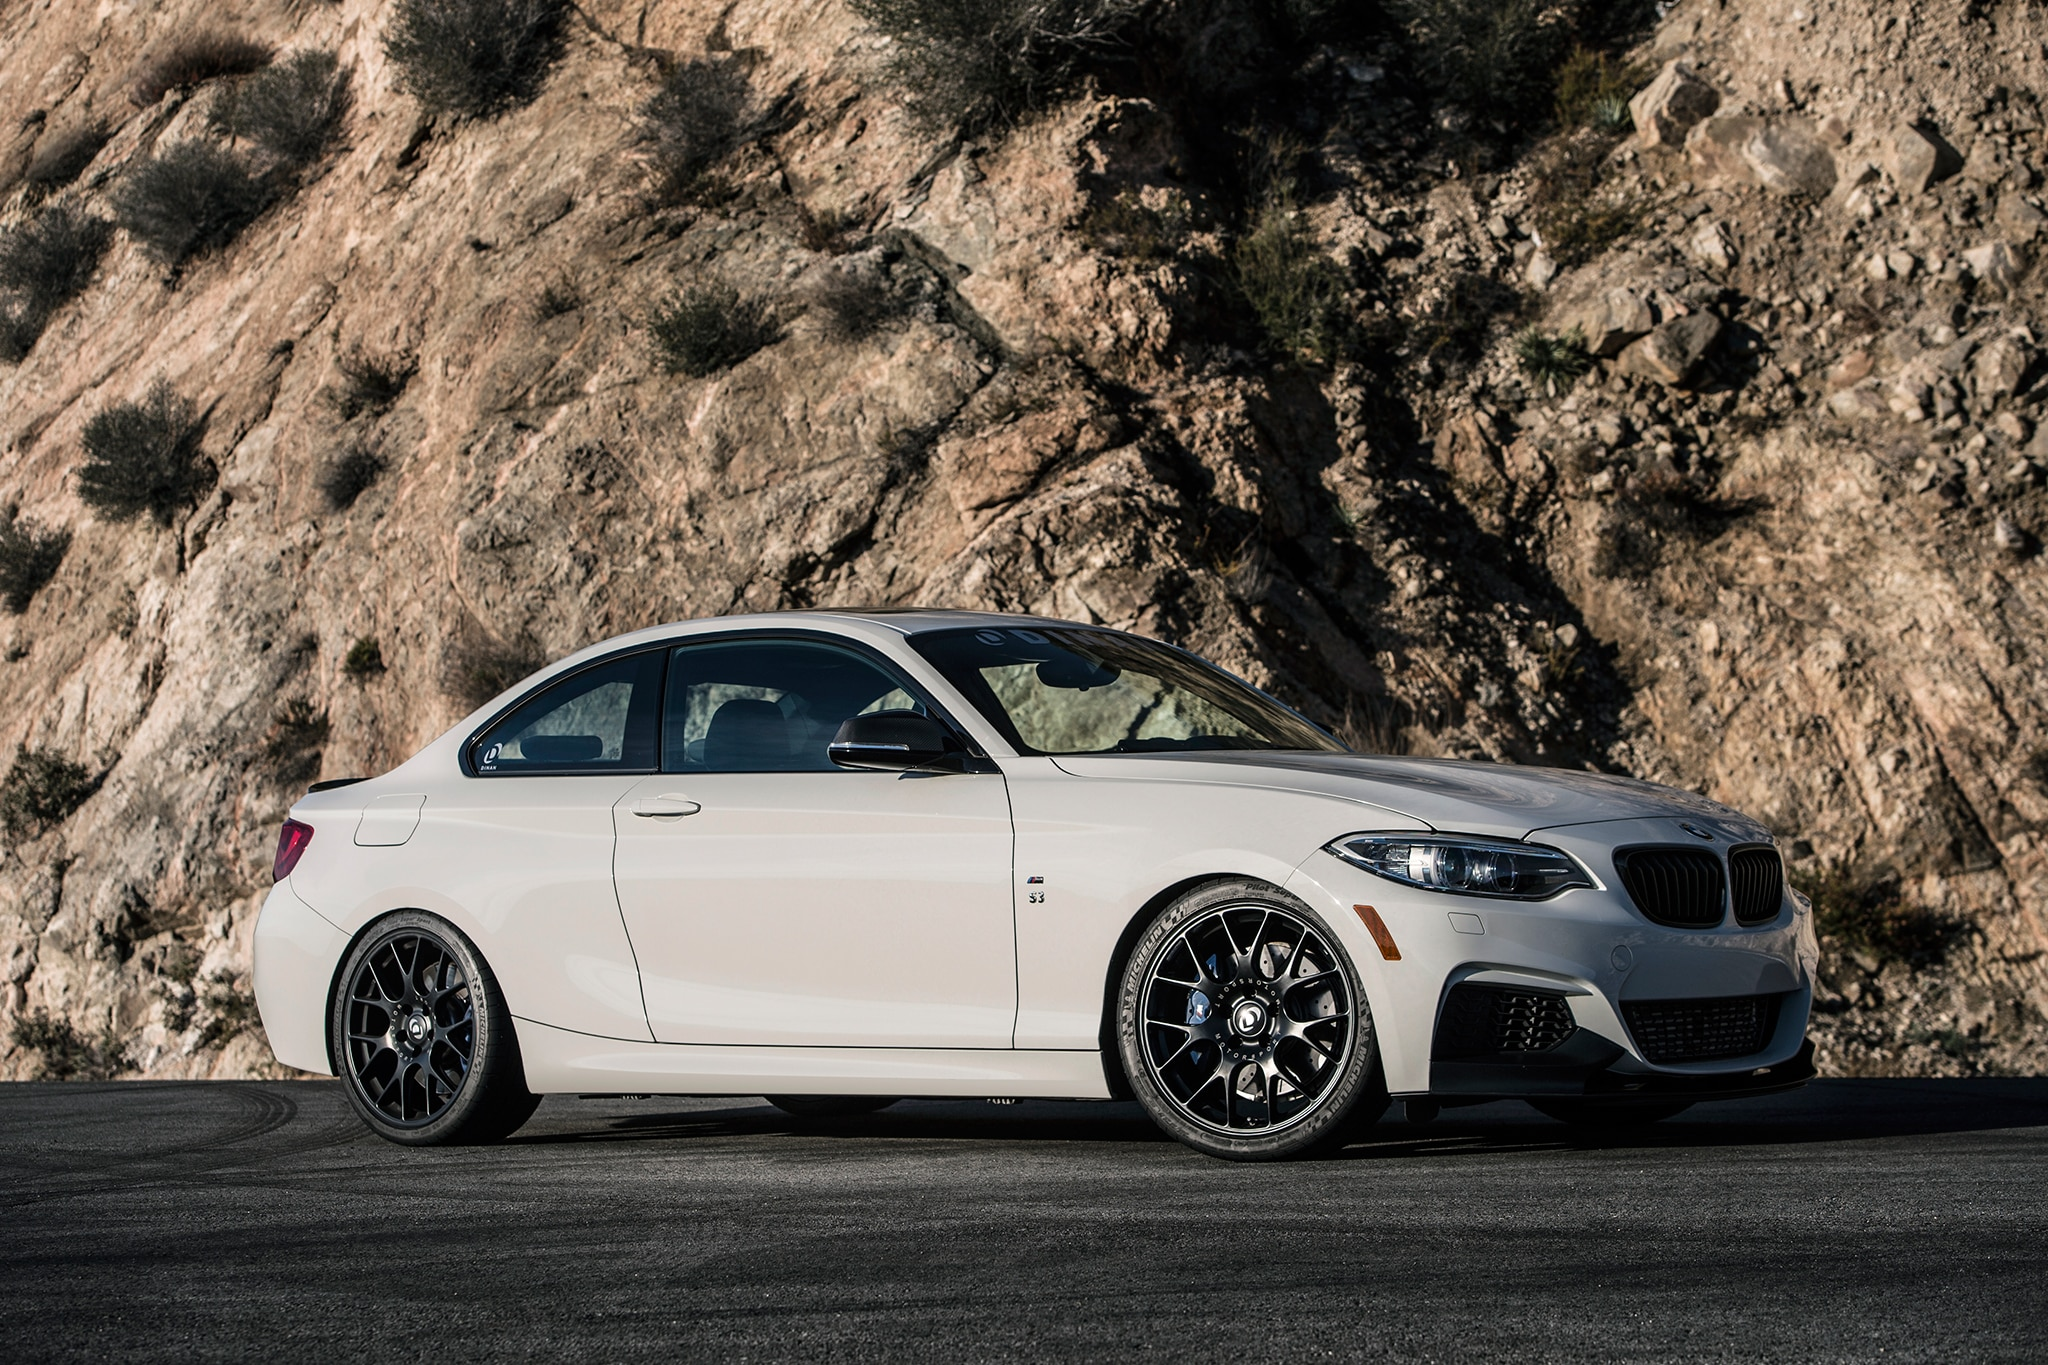 We Drive Dinans 445hp S3 BMW M235i